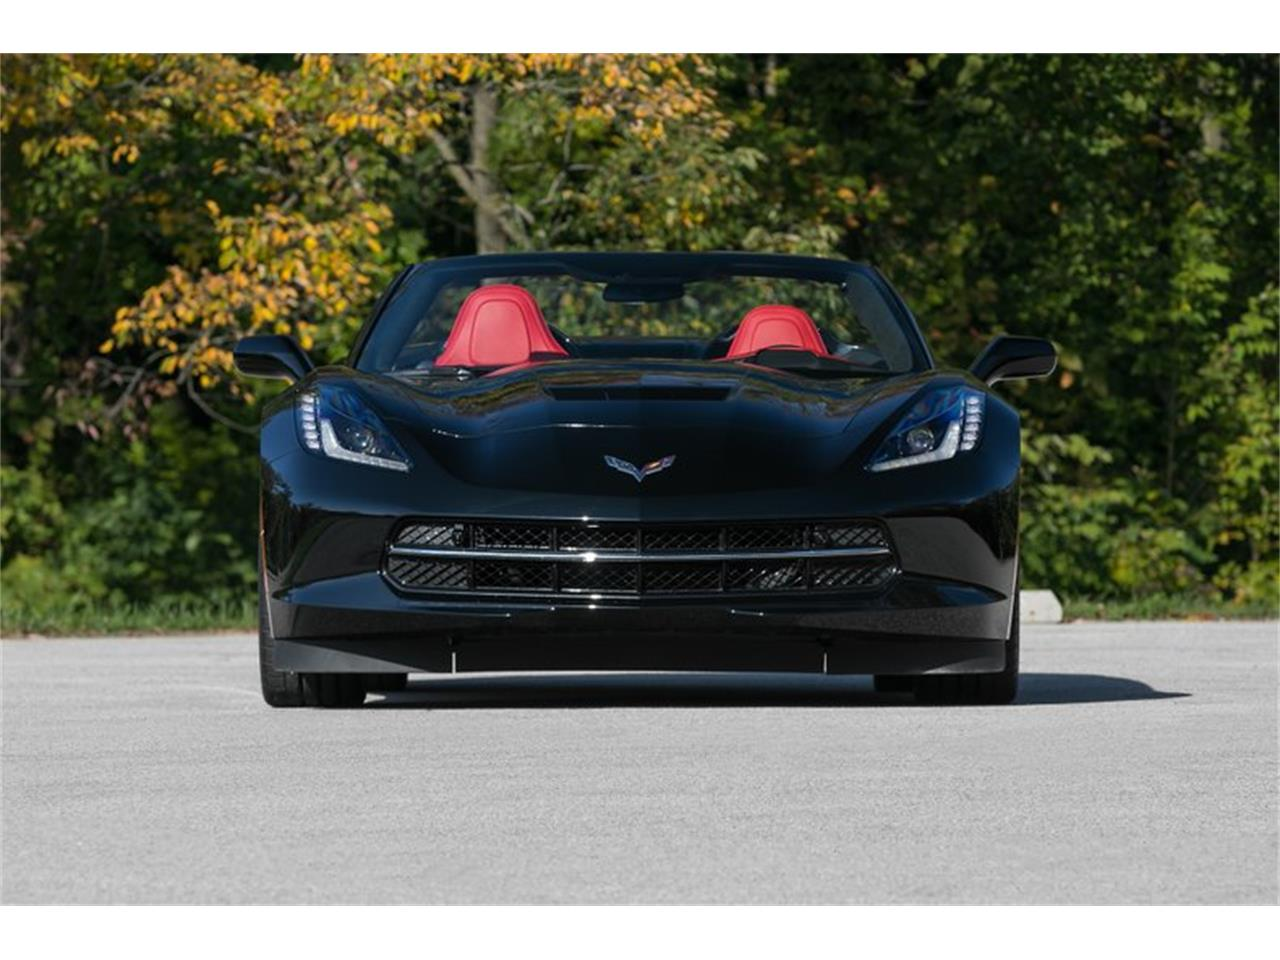 2016 Chevrolet Corvette for sale in St. Charles, MO – photo 2